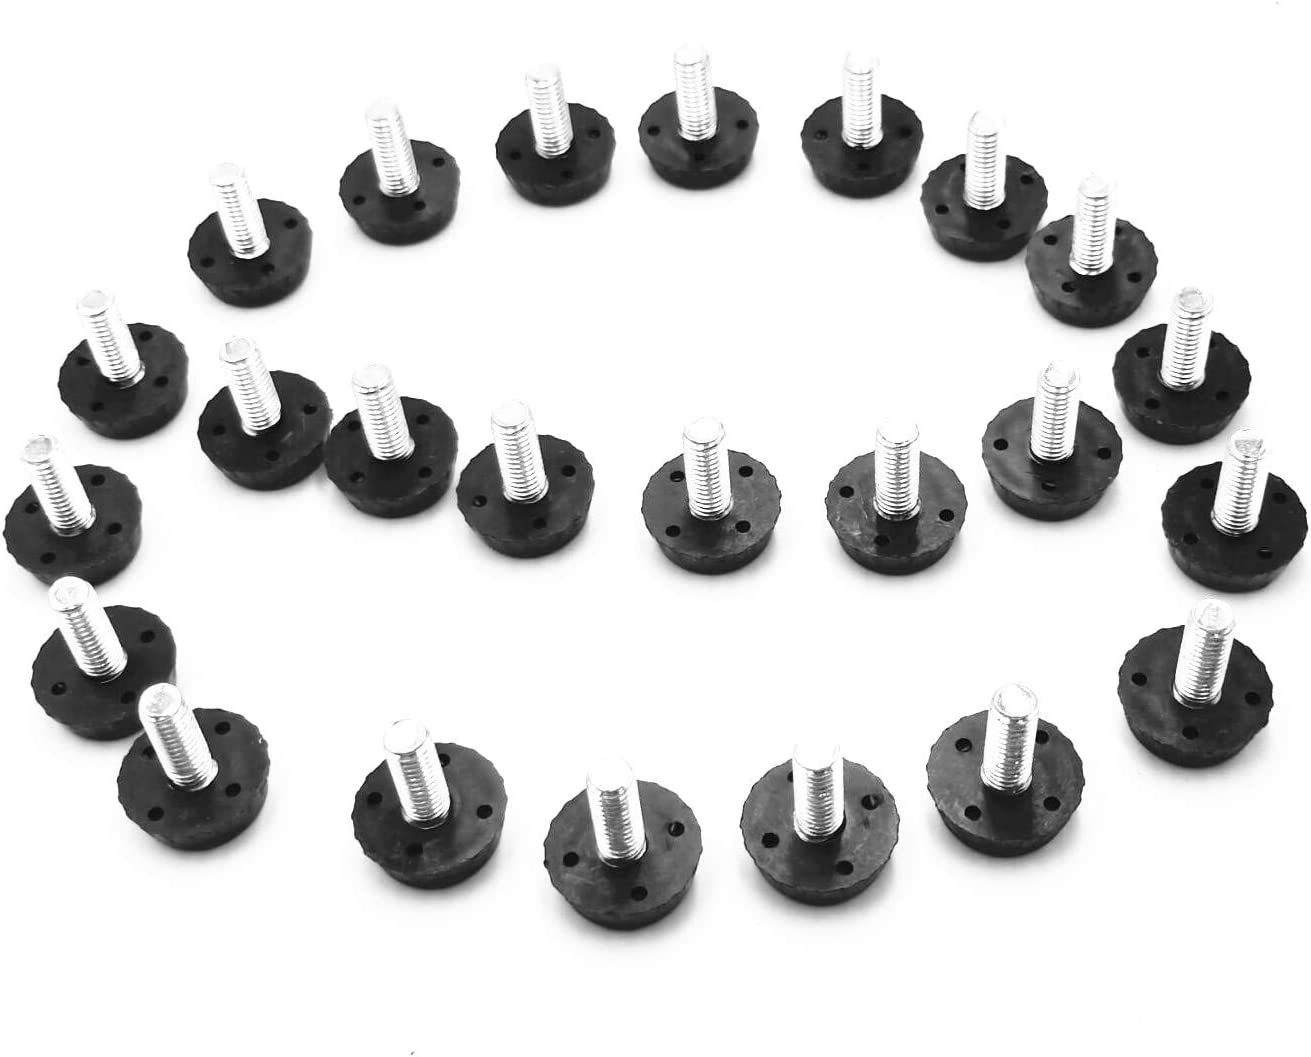 Screw On Furniture Glide Leveling Foot Adjuster for Furniture Legs M6 Thread (20pcs, M6 x 16mm)